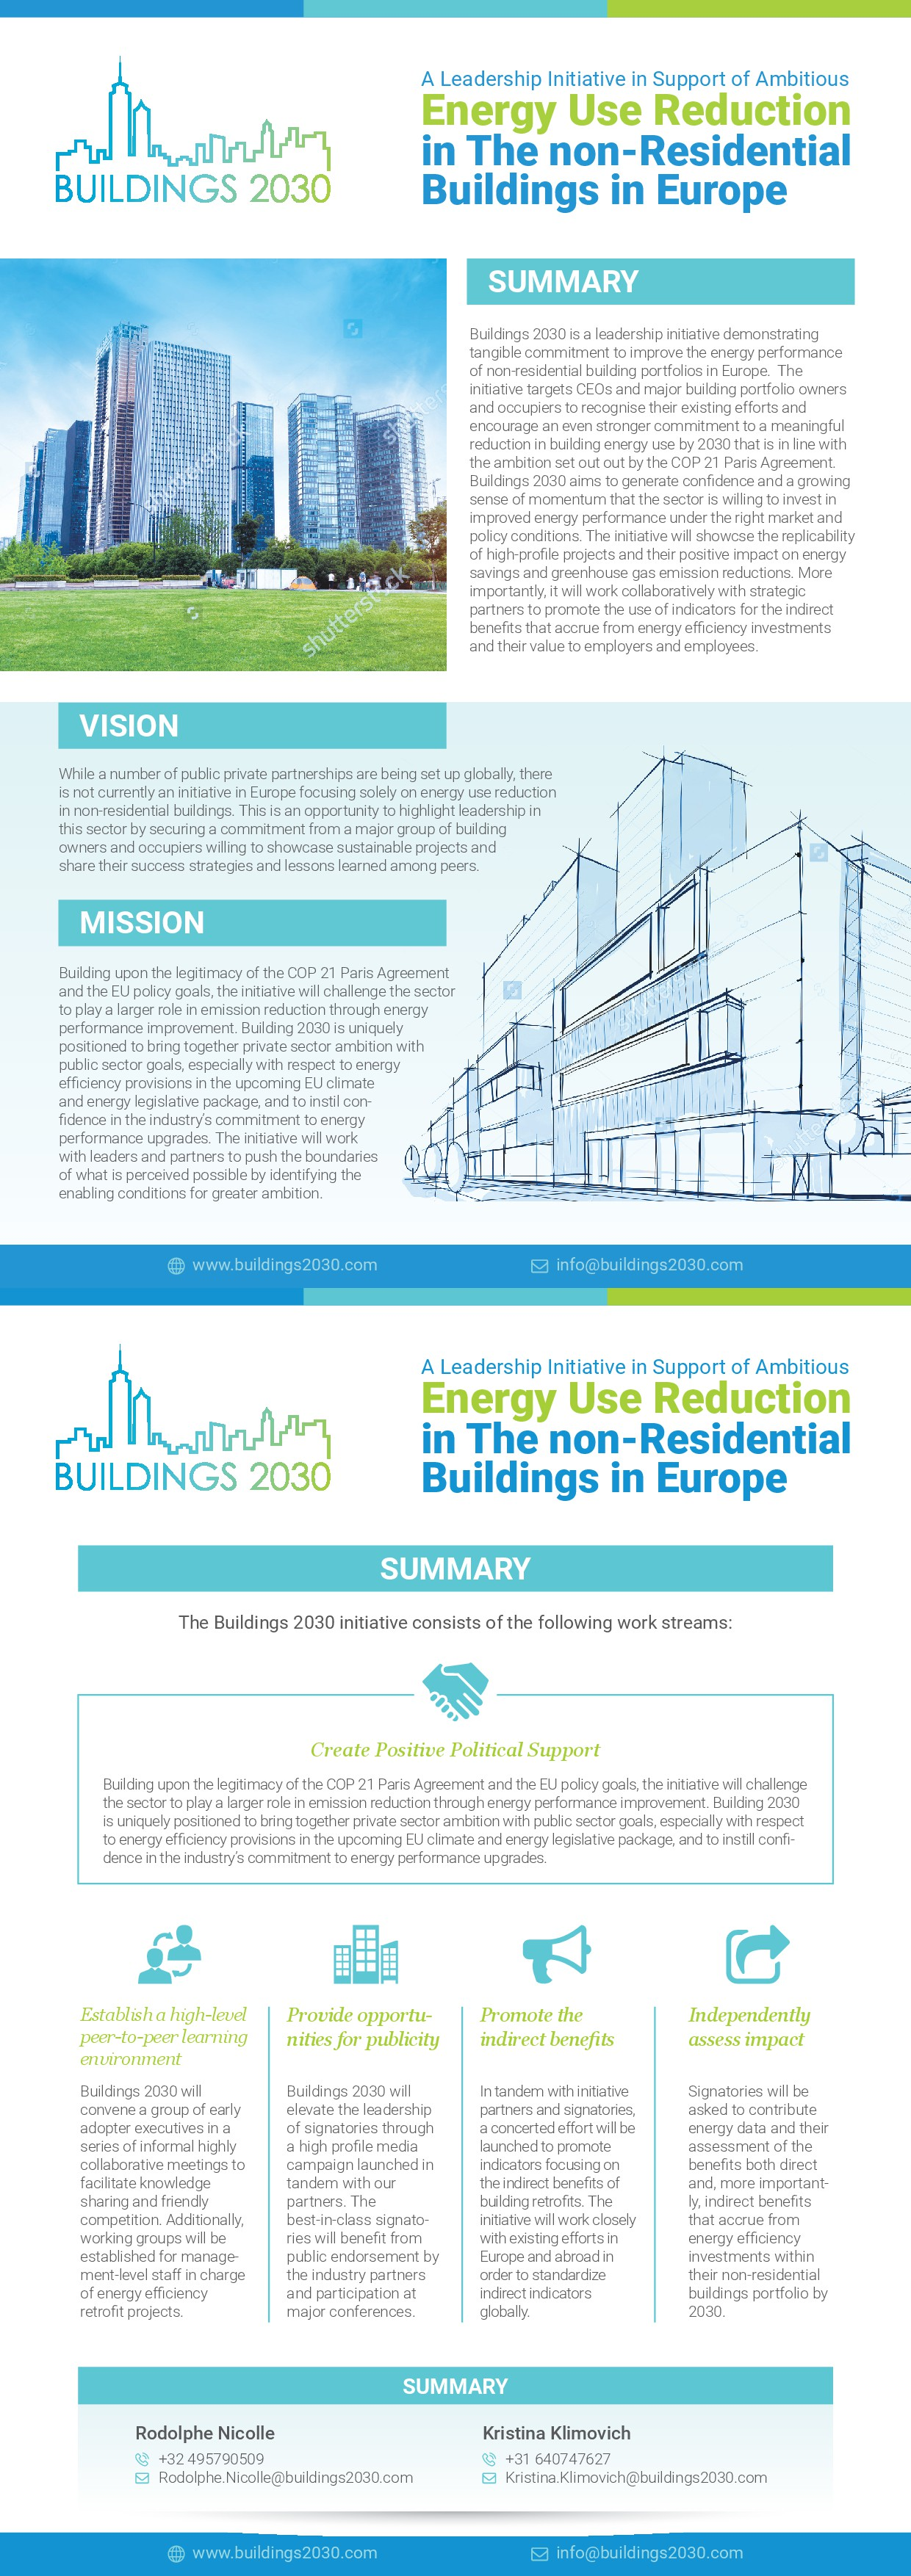 Design a 2-page flyer for a new leadership initiative - Buildings 2030